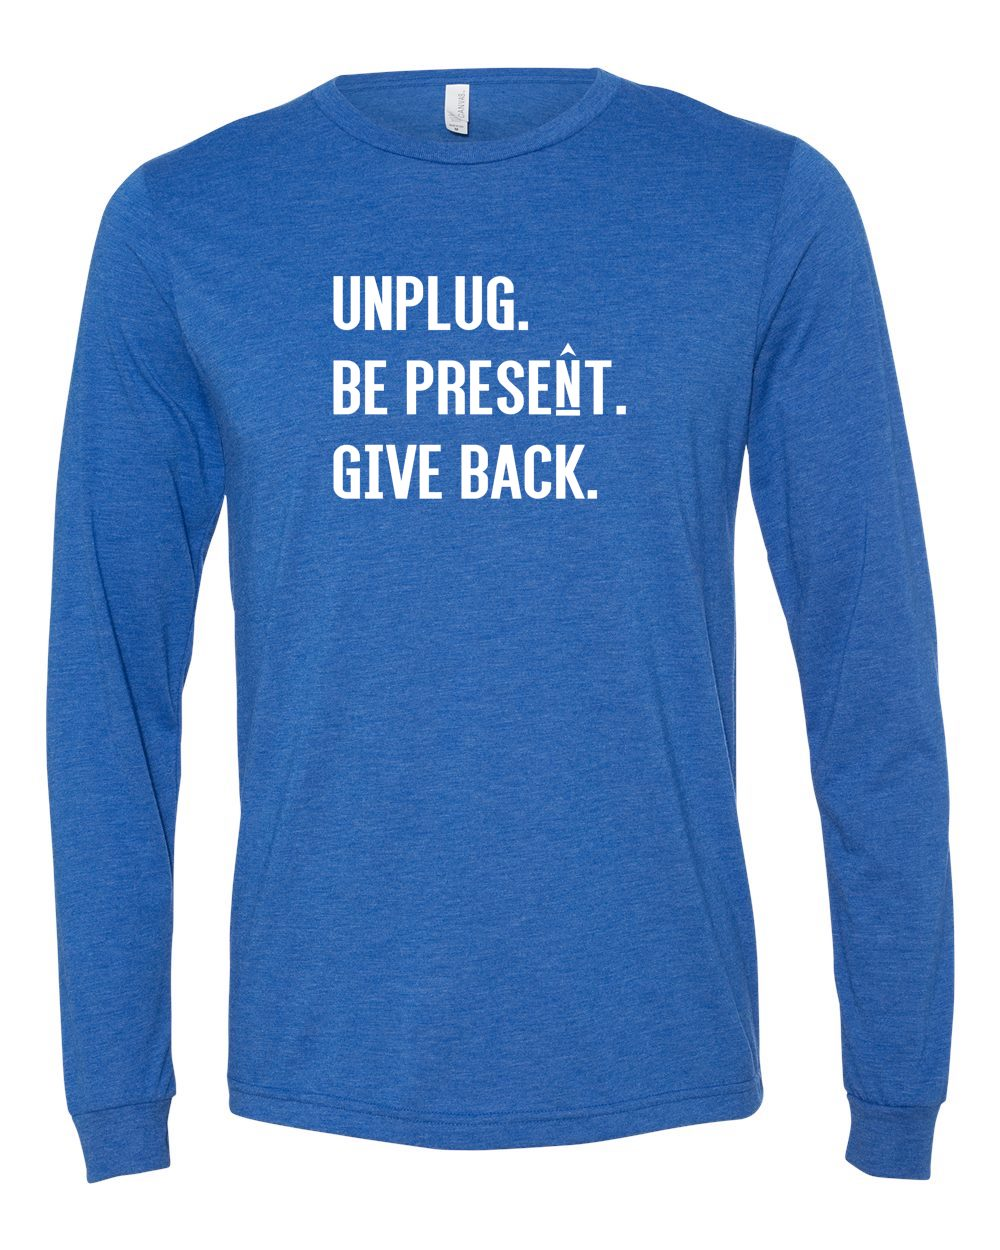 UNPLUG. BE PRESENT. GIVE BACK. Premium Long Sleeve T-Shirt